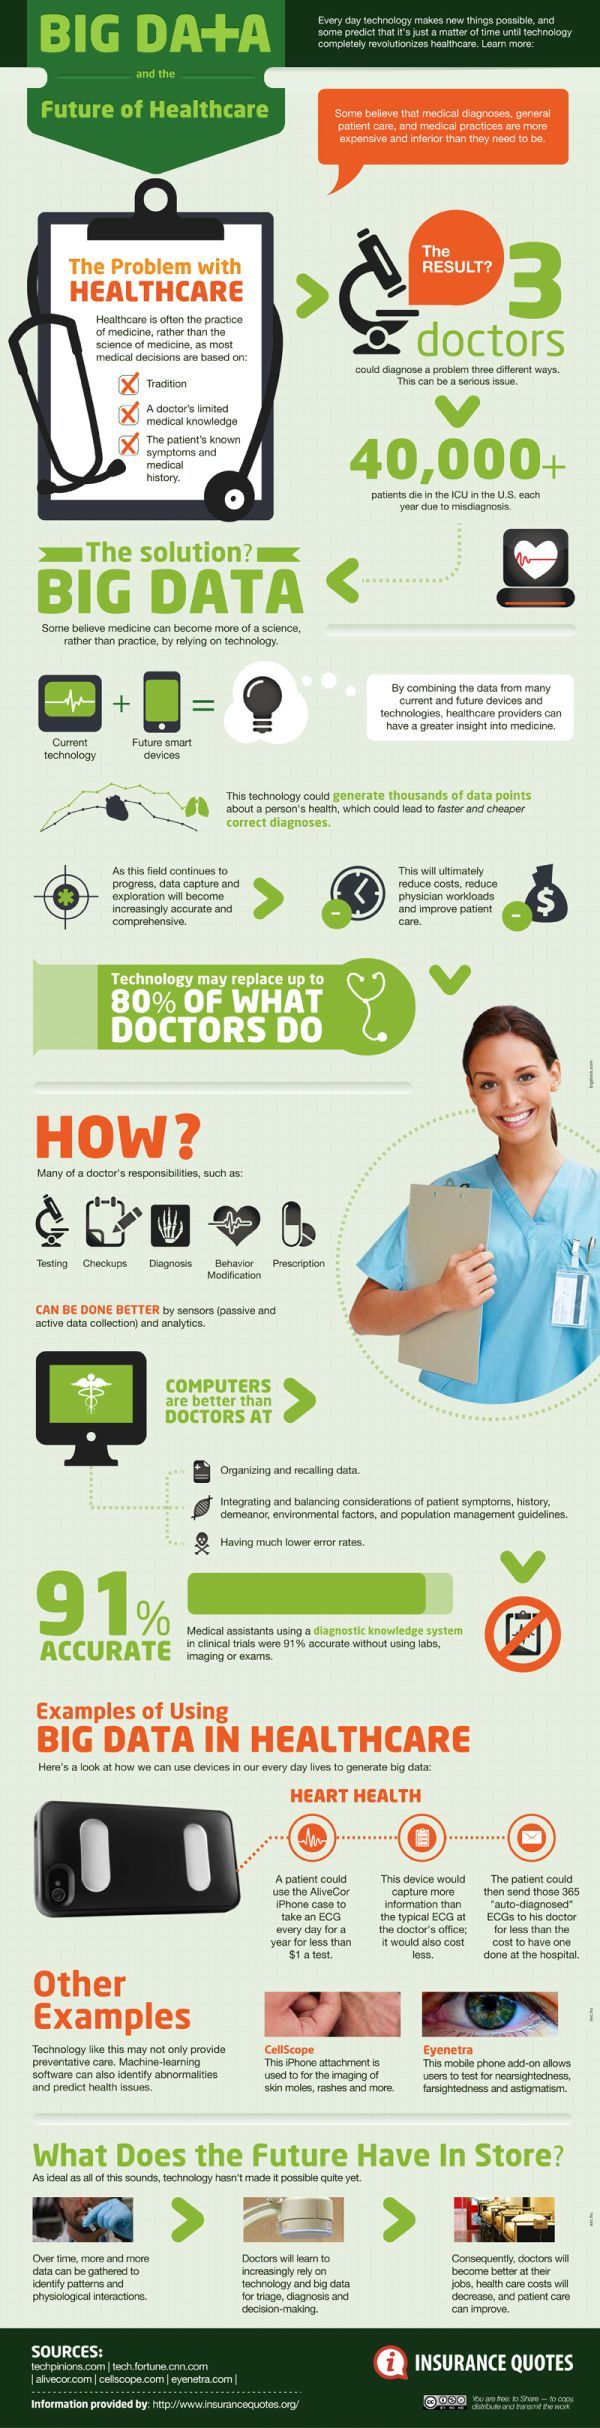 Infographic: Big data and the future of health care